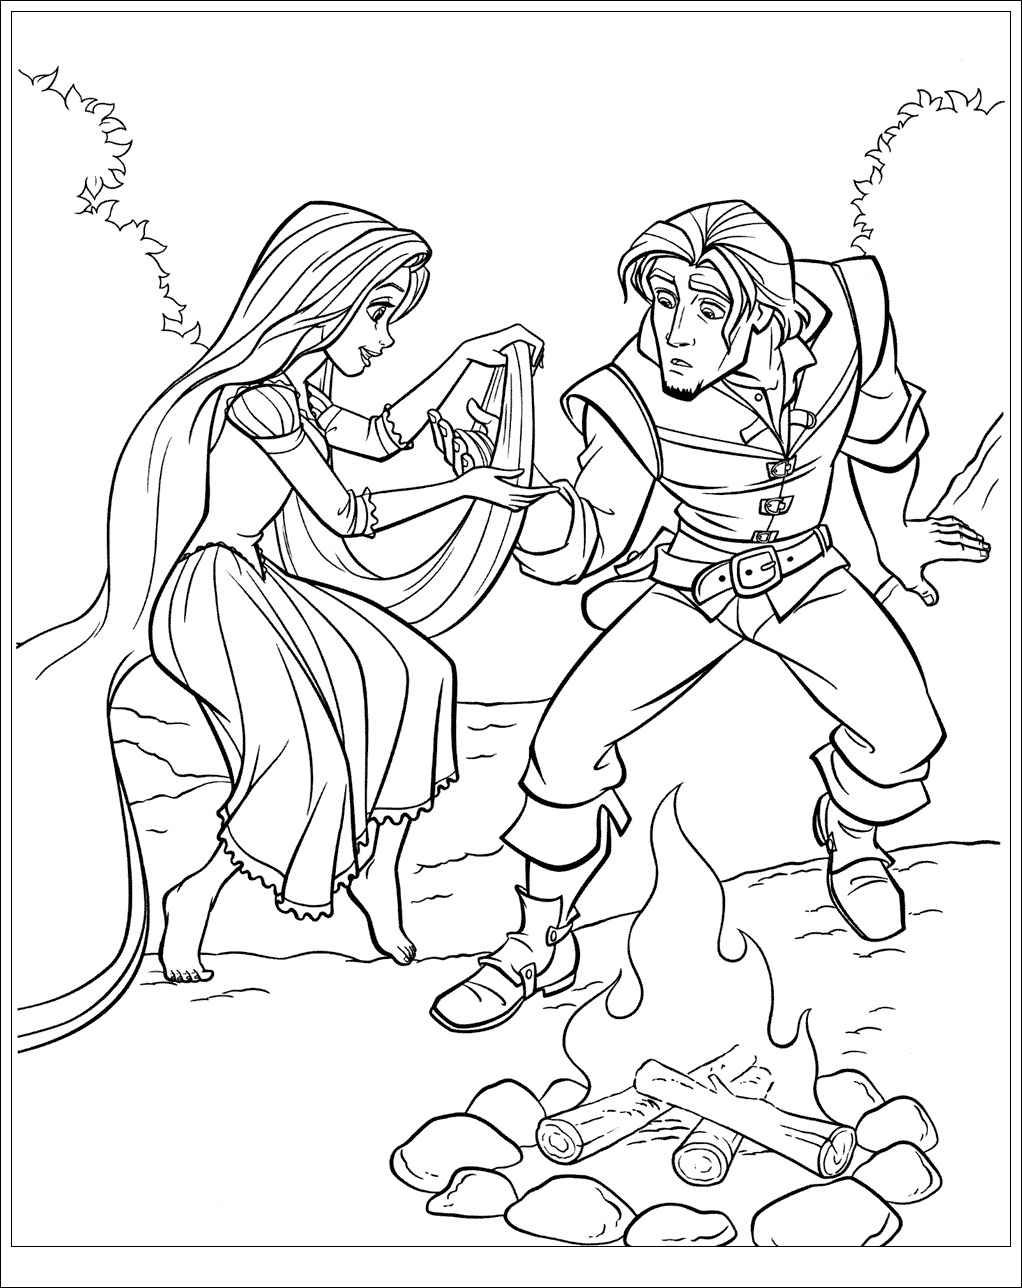 Simple Tangled coloring page to print and color for free, inspired by 2010 Disney movie